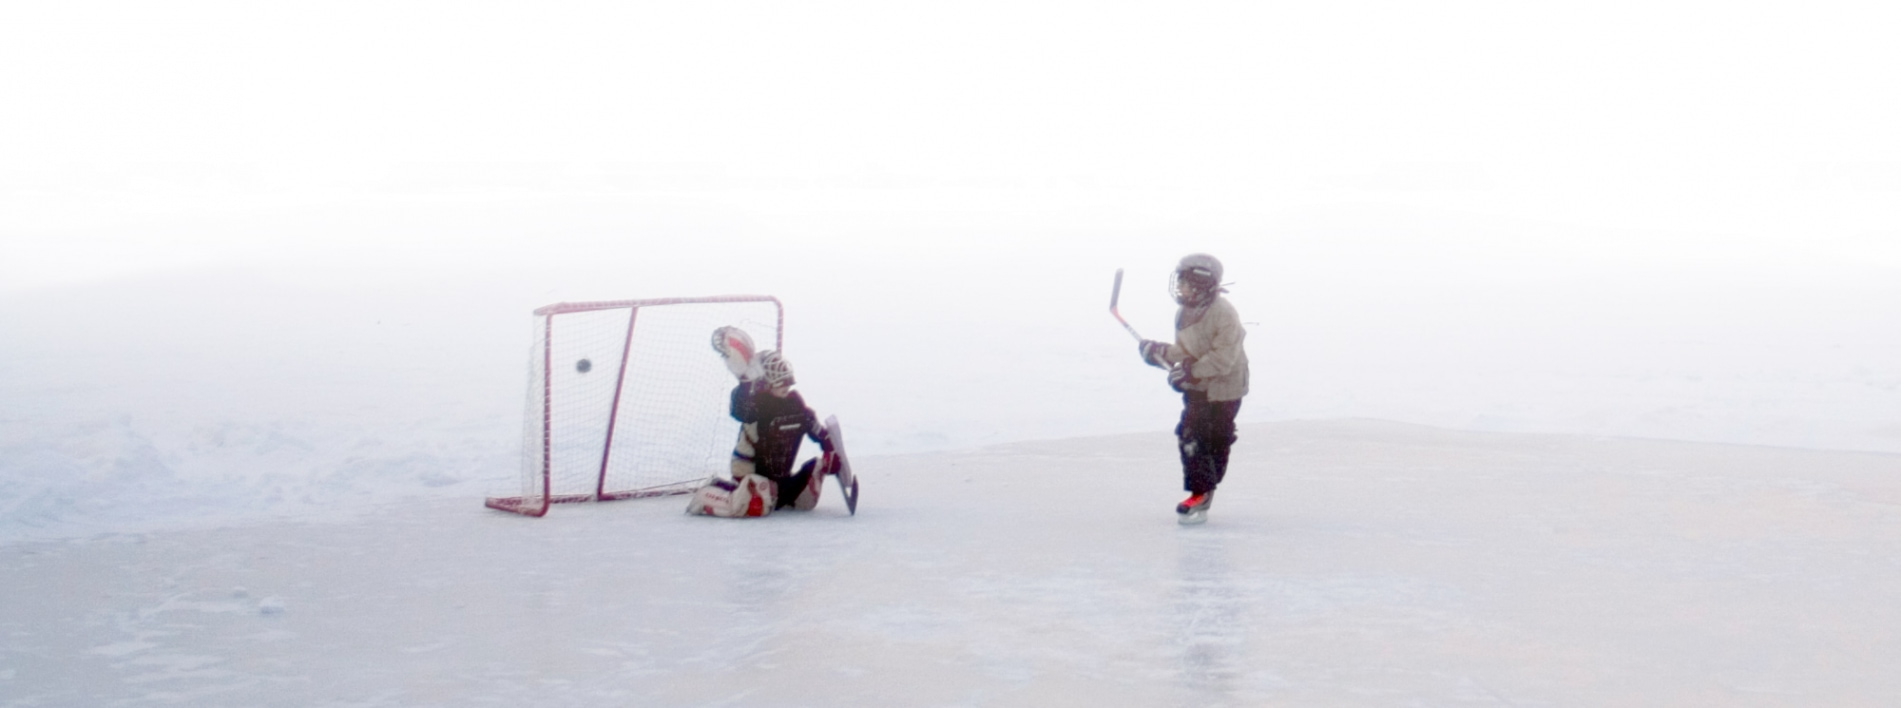 Two boys playing ice hockey on frozen lake